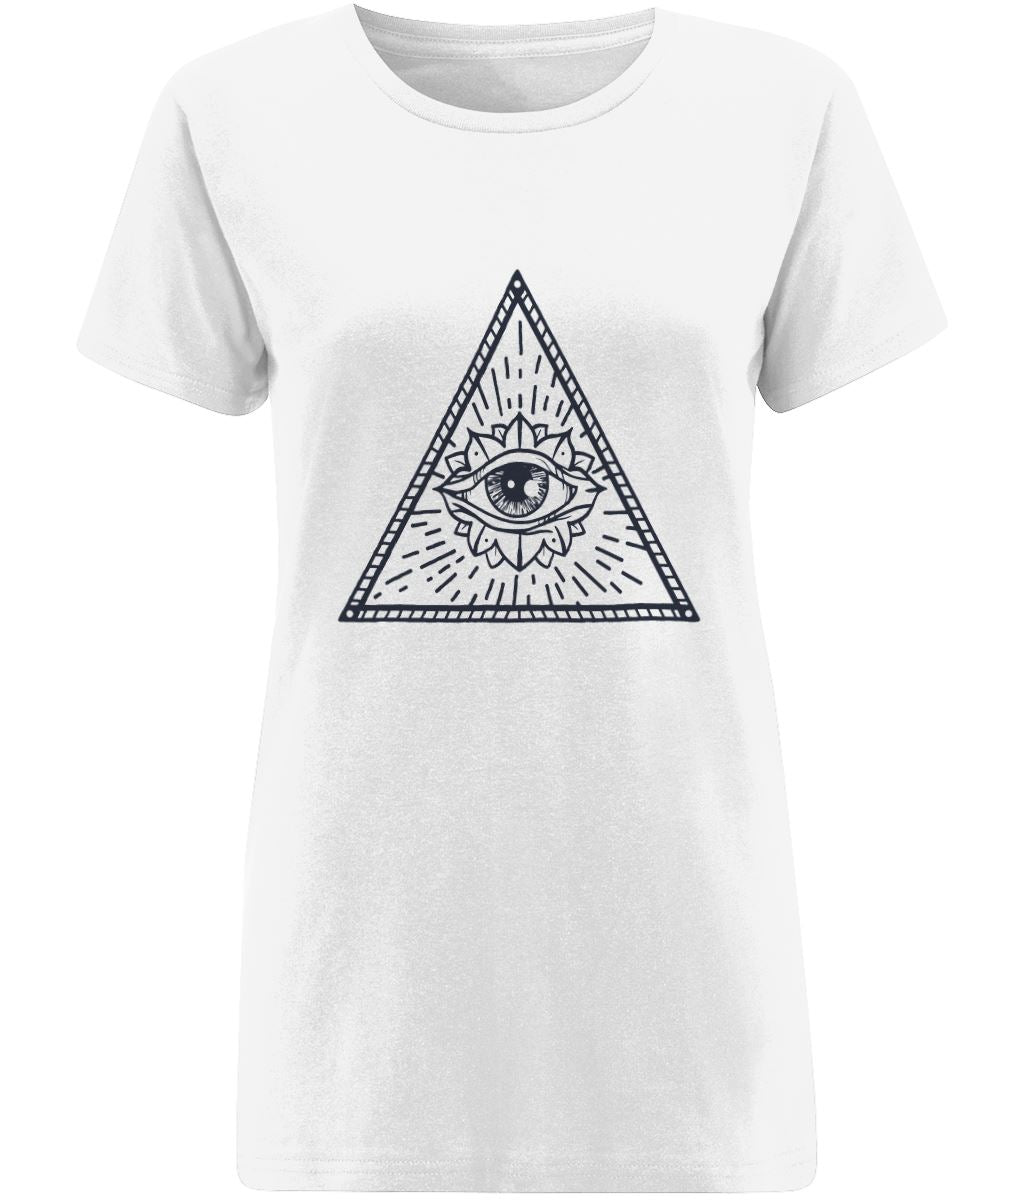 Eye of Providence II T-shirt | Sustainable Fashion - IndianBelieves